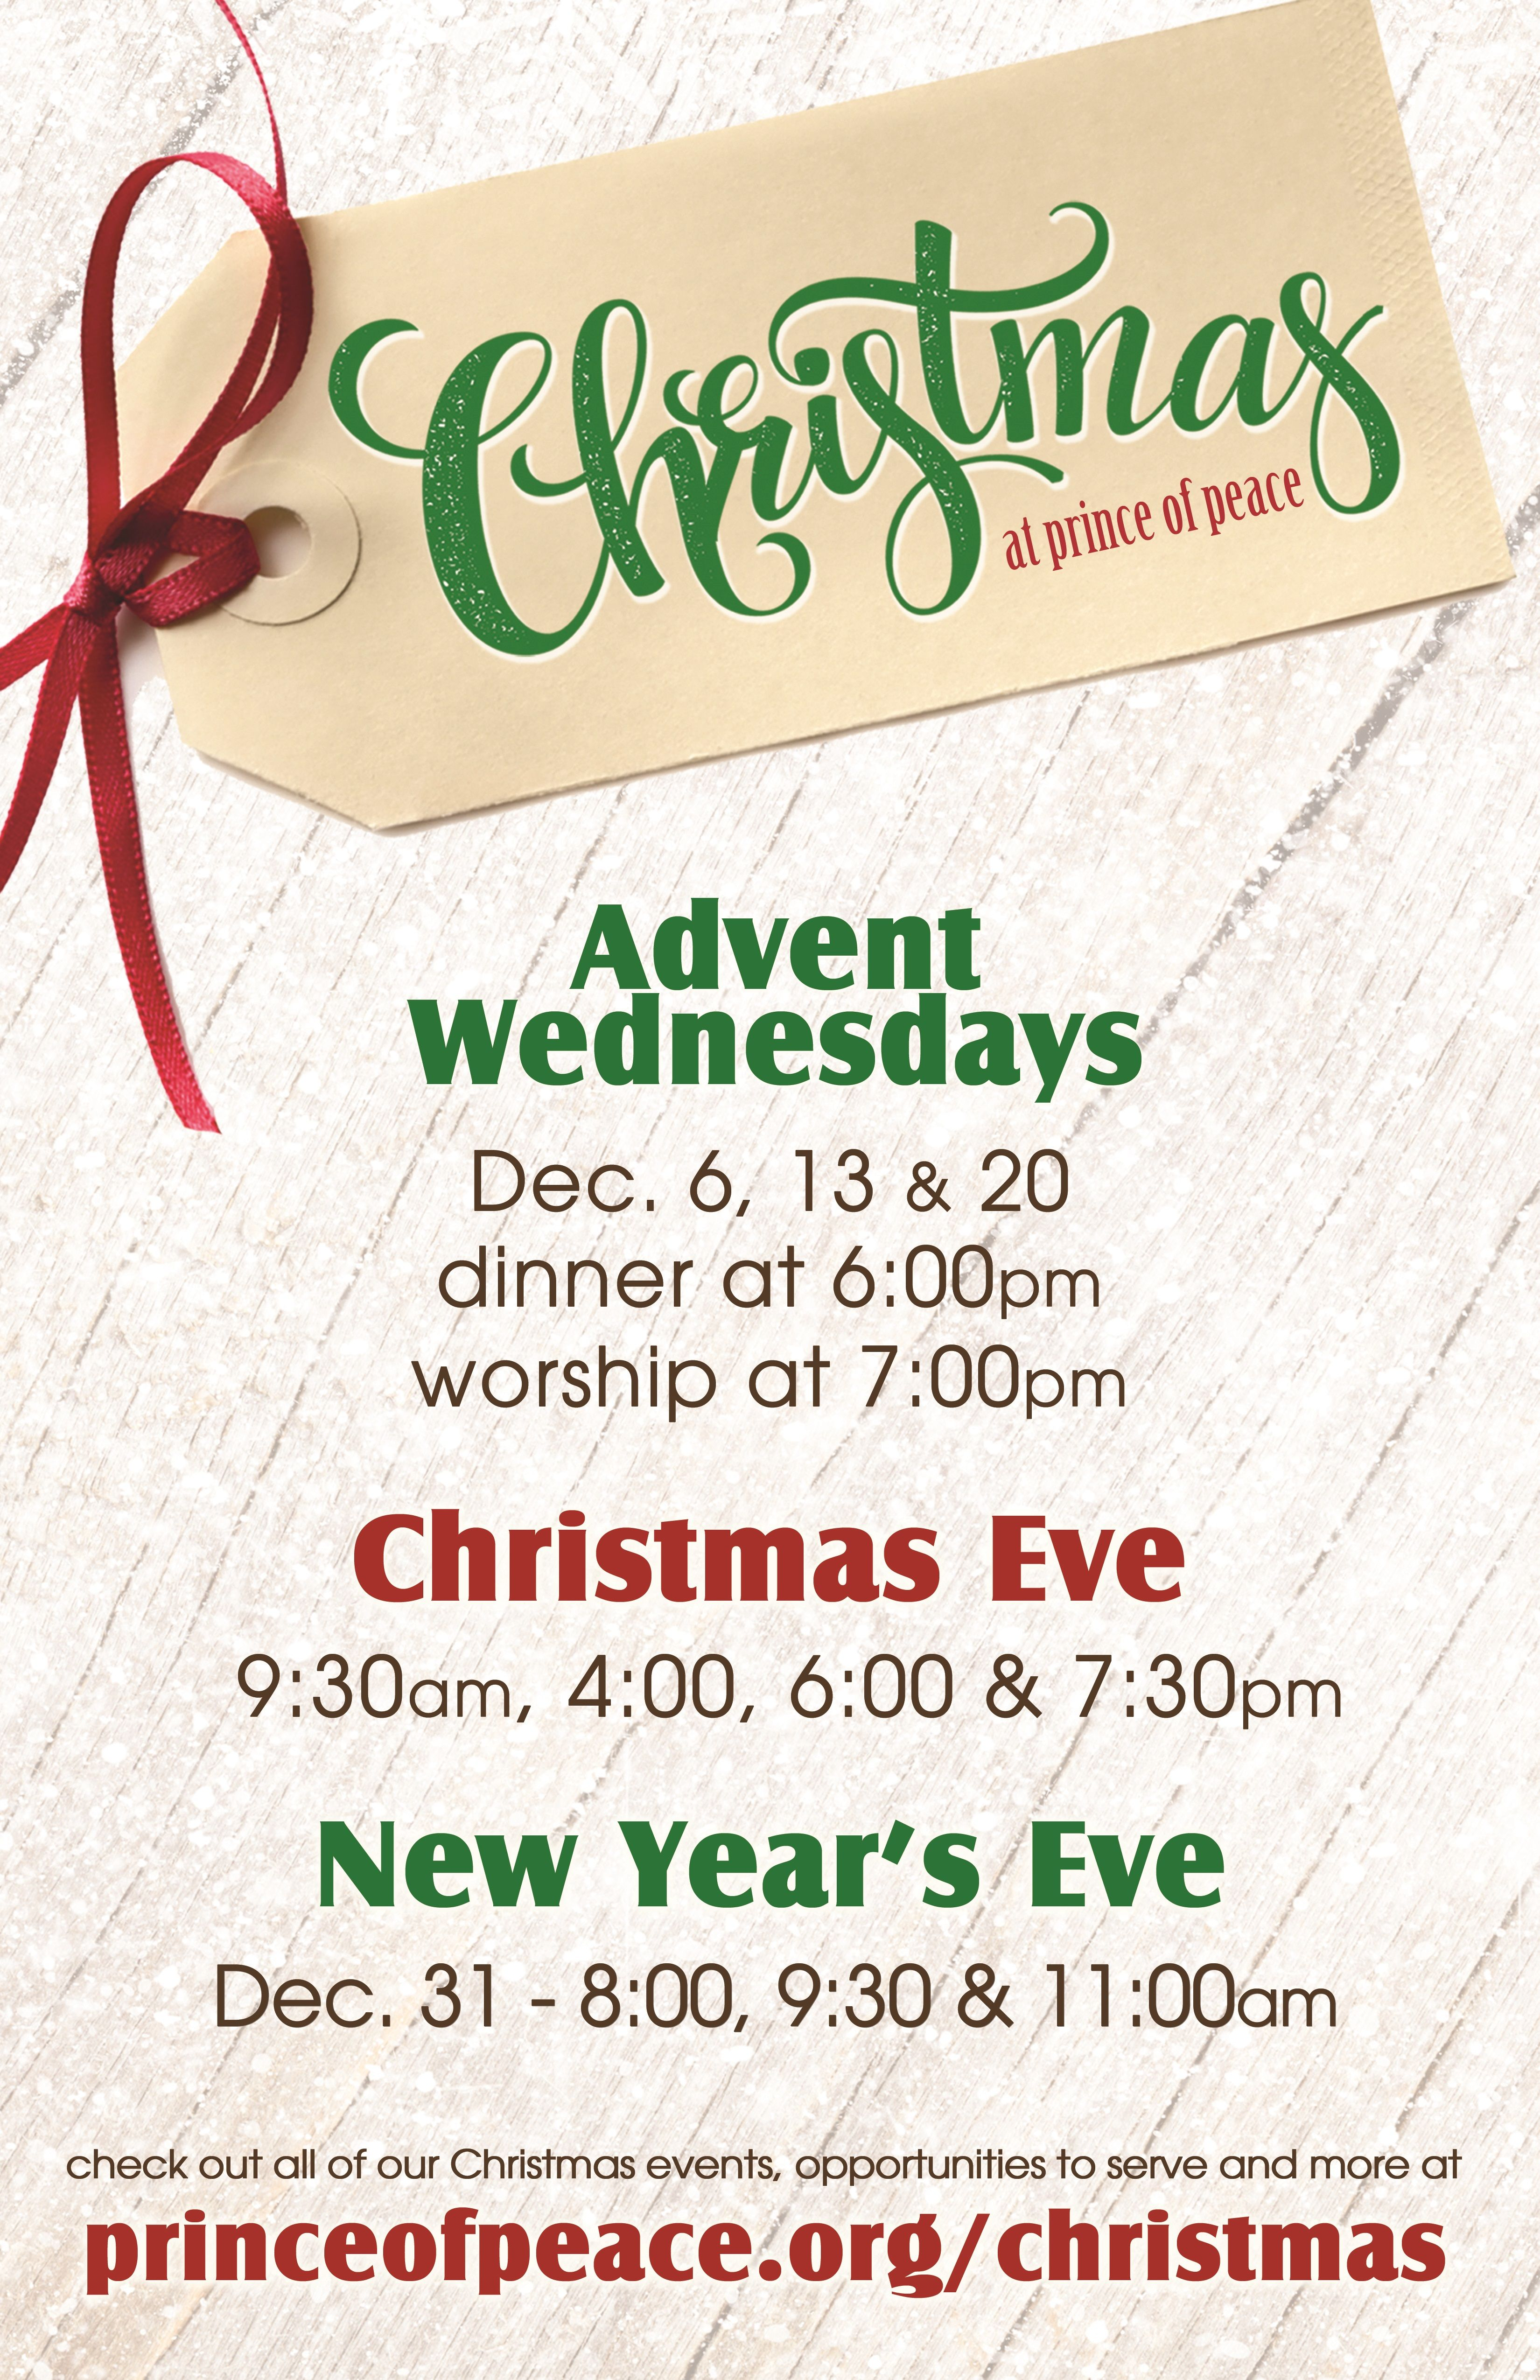 Advent Wednesdays: Dec. 6, 13, 20: Dinner at 6pm, Worship at 7pm ...